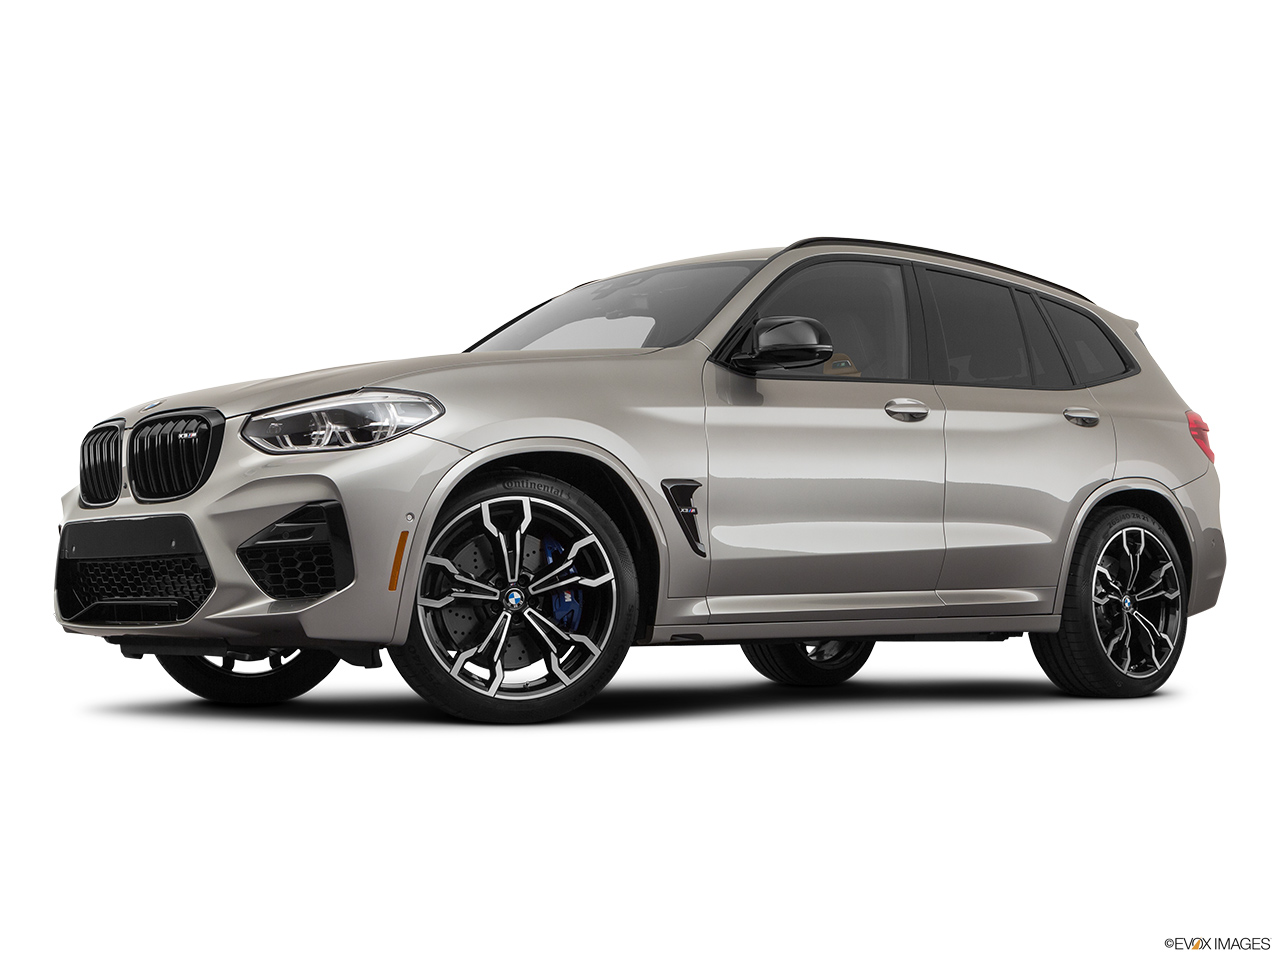 2020 BMW X3 M Competition Low/wide front 5/8.